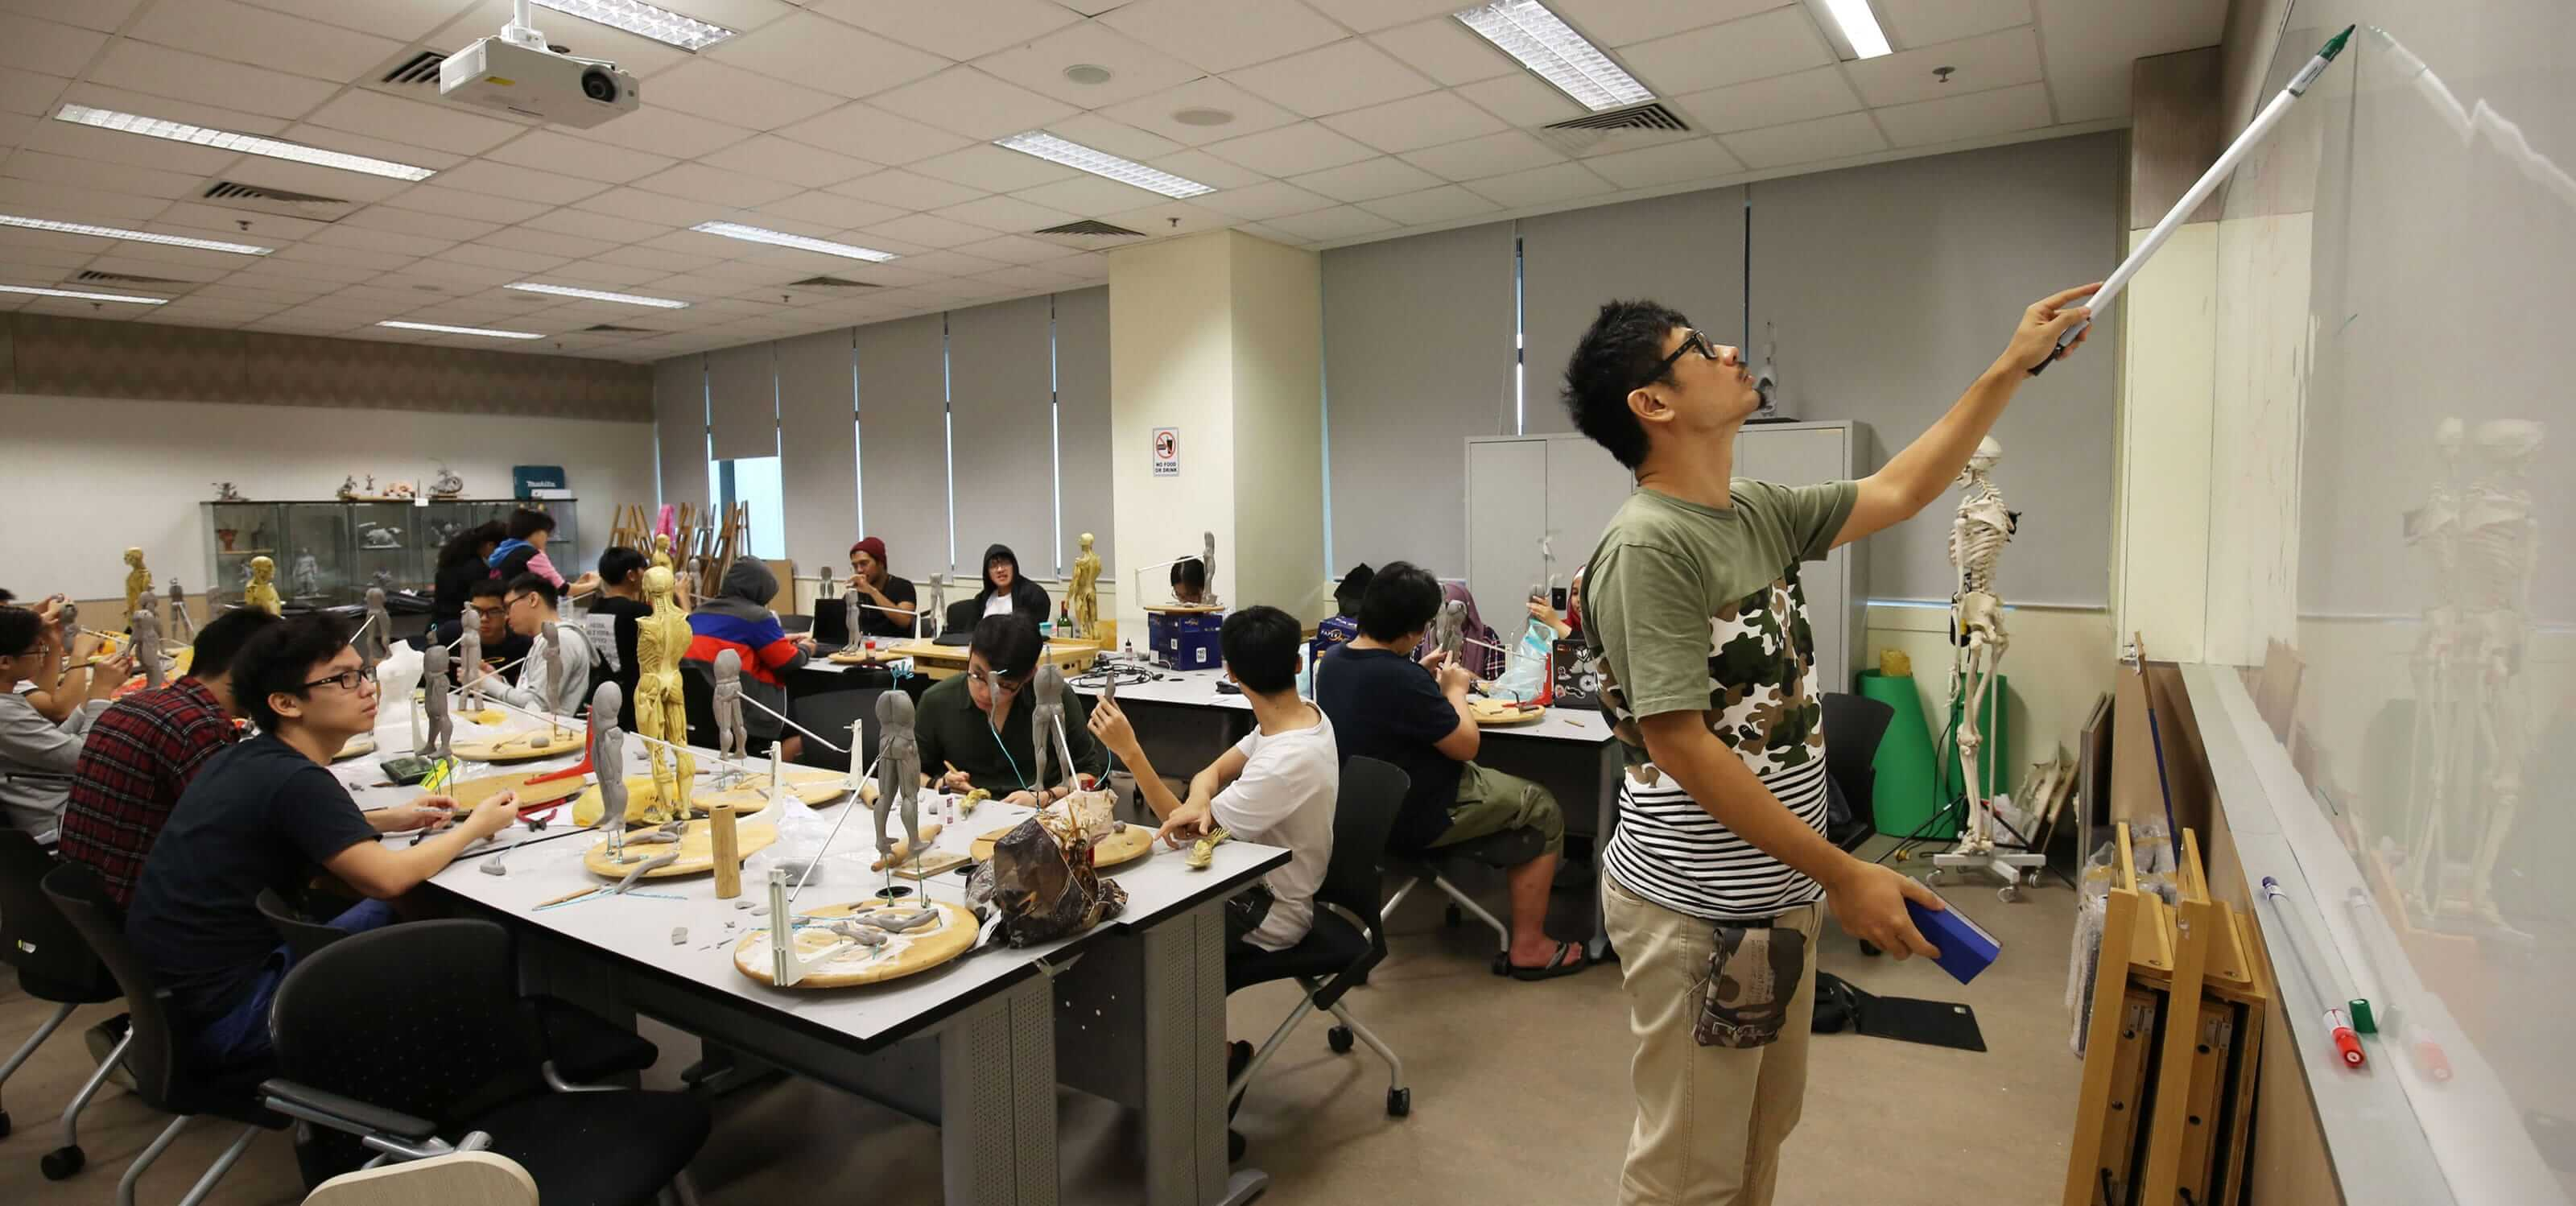 Students in a DigiPen (Singapore) sculpting class watch as an instructor writes on a whiteboard